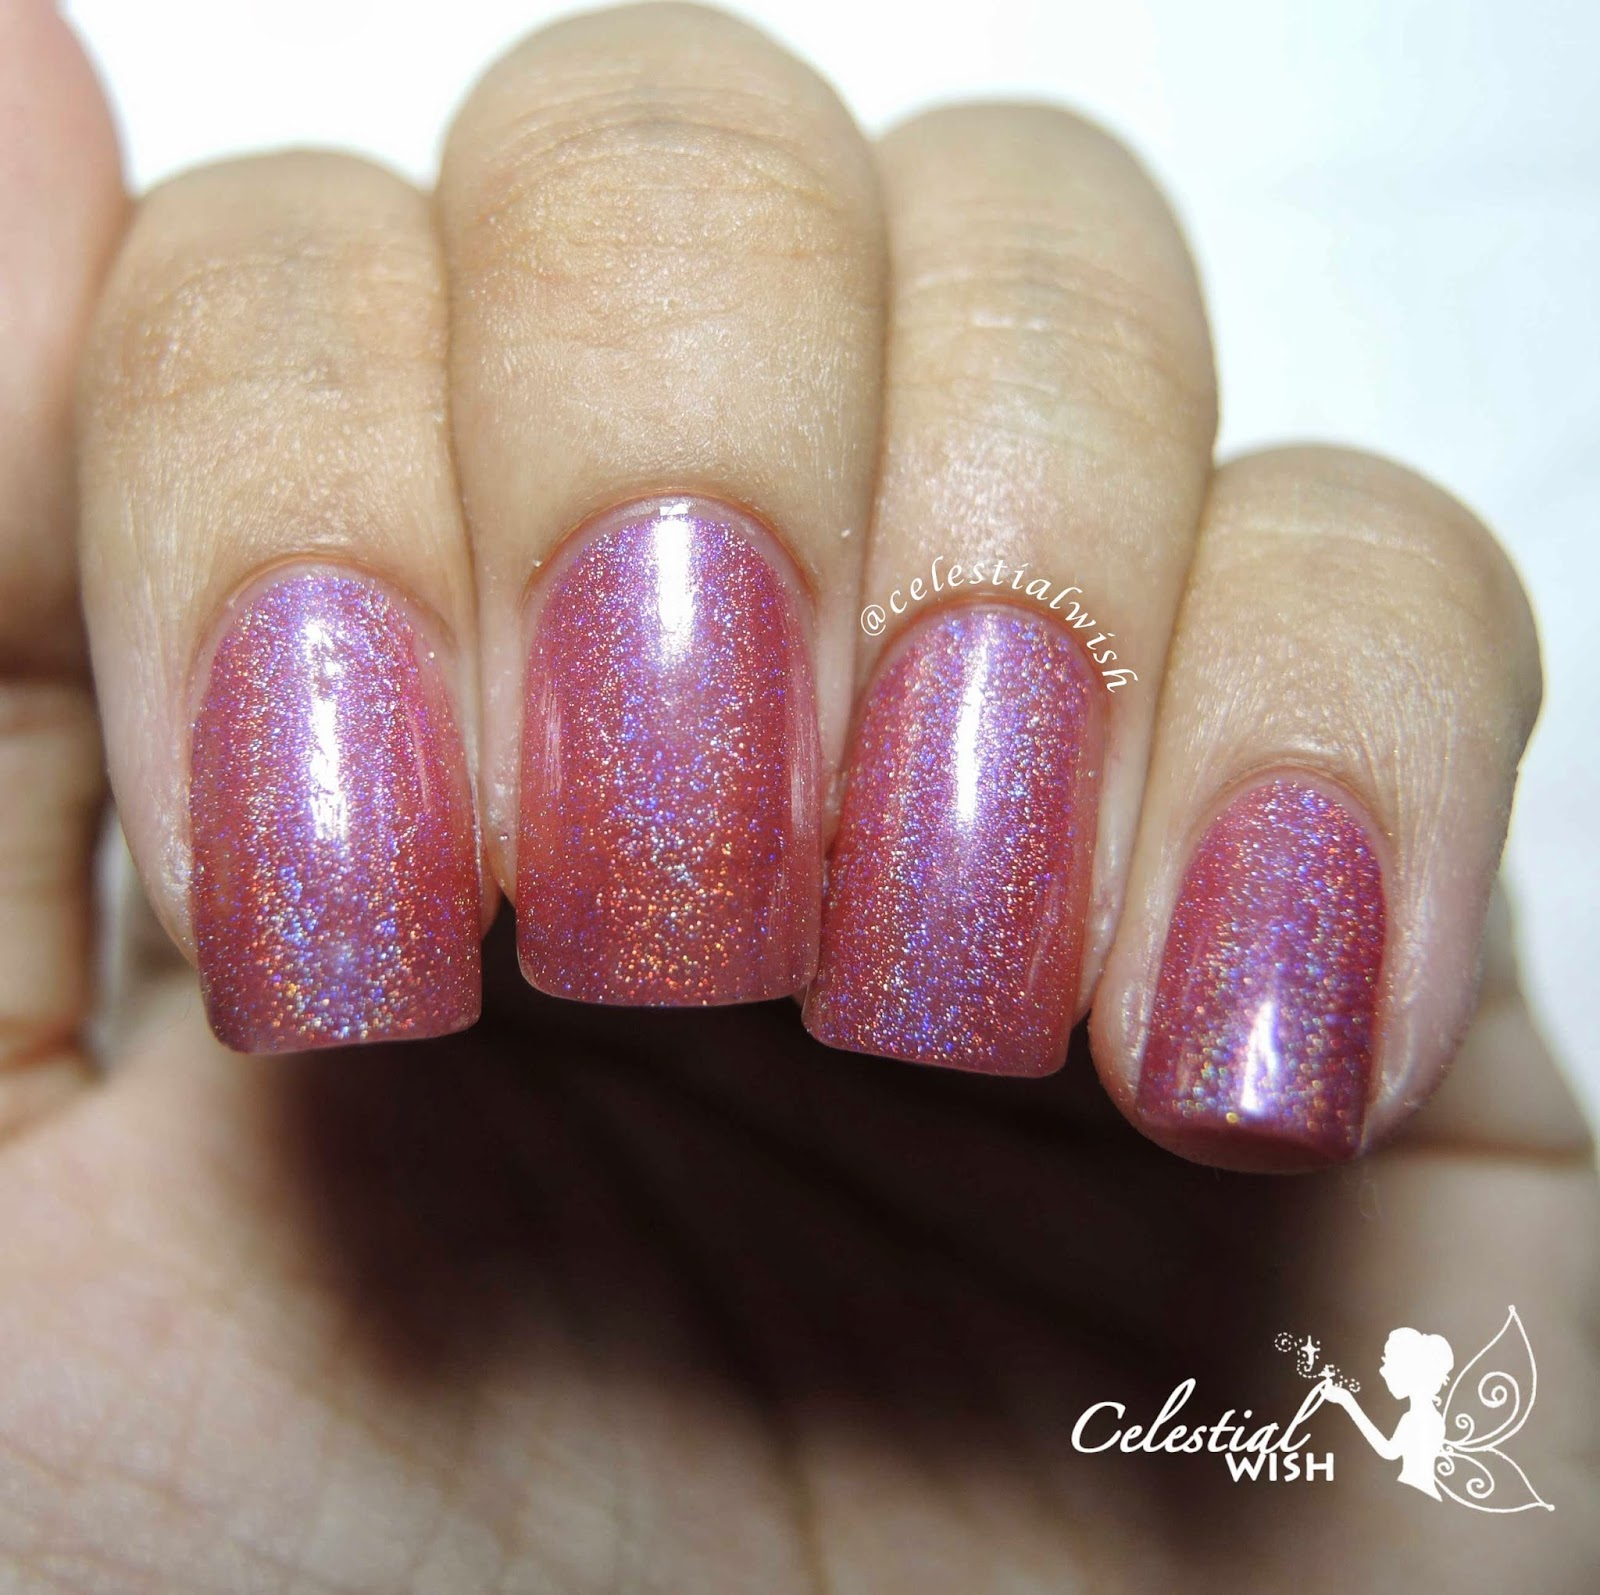 Northern Star Polish's Carnivale